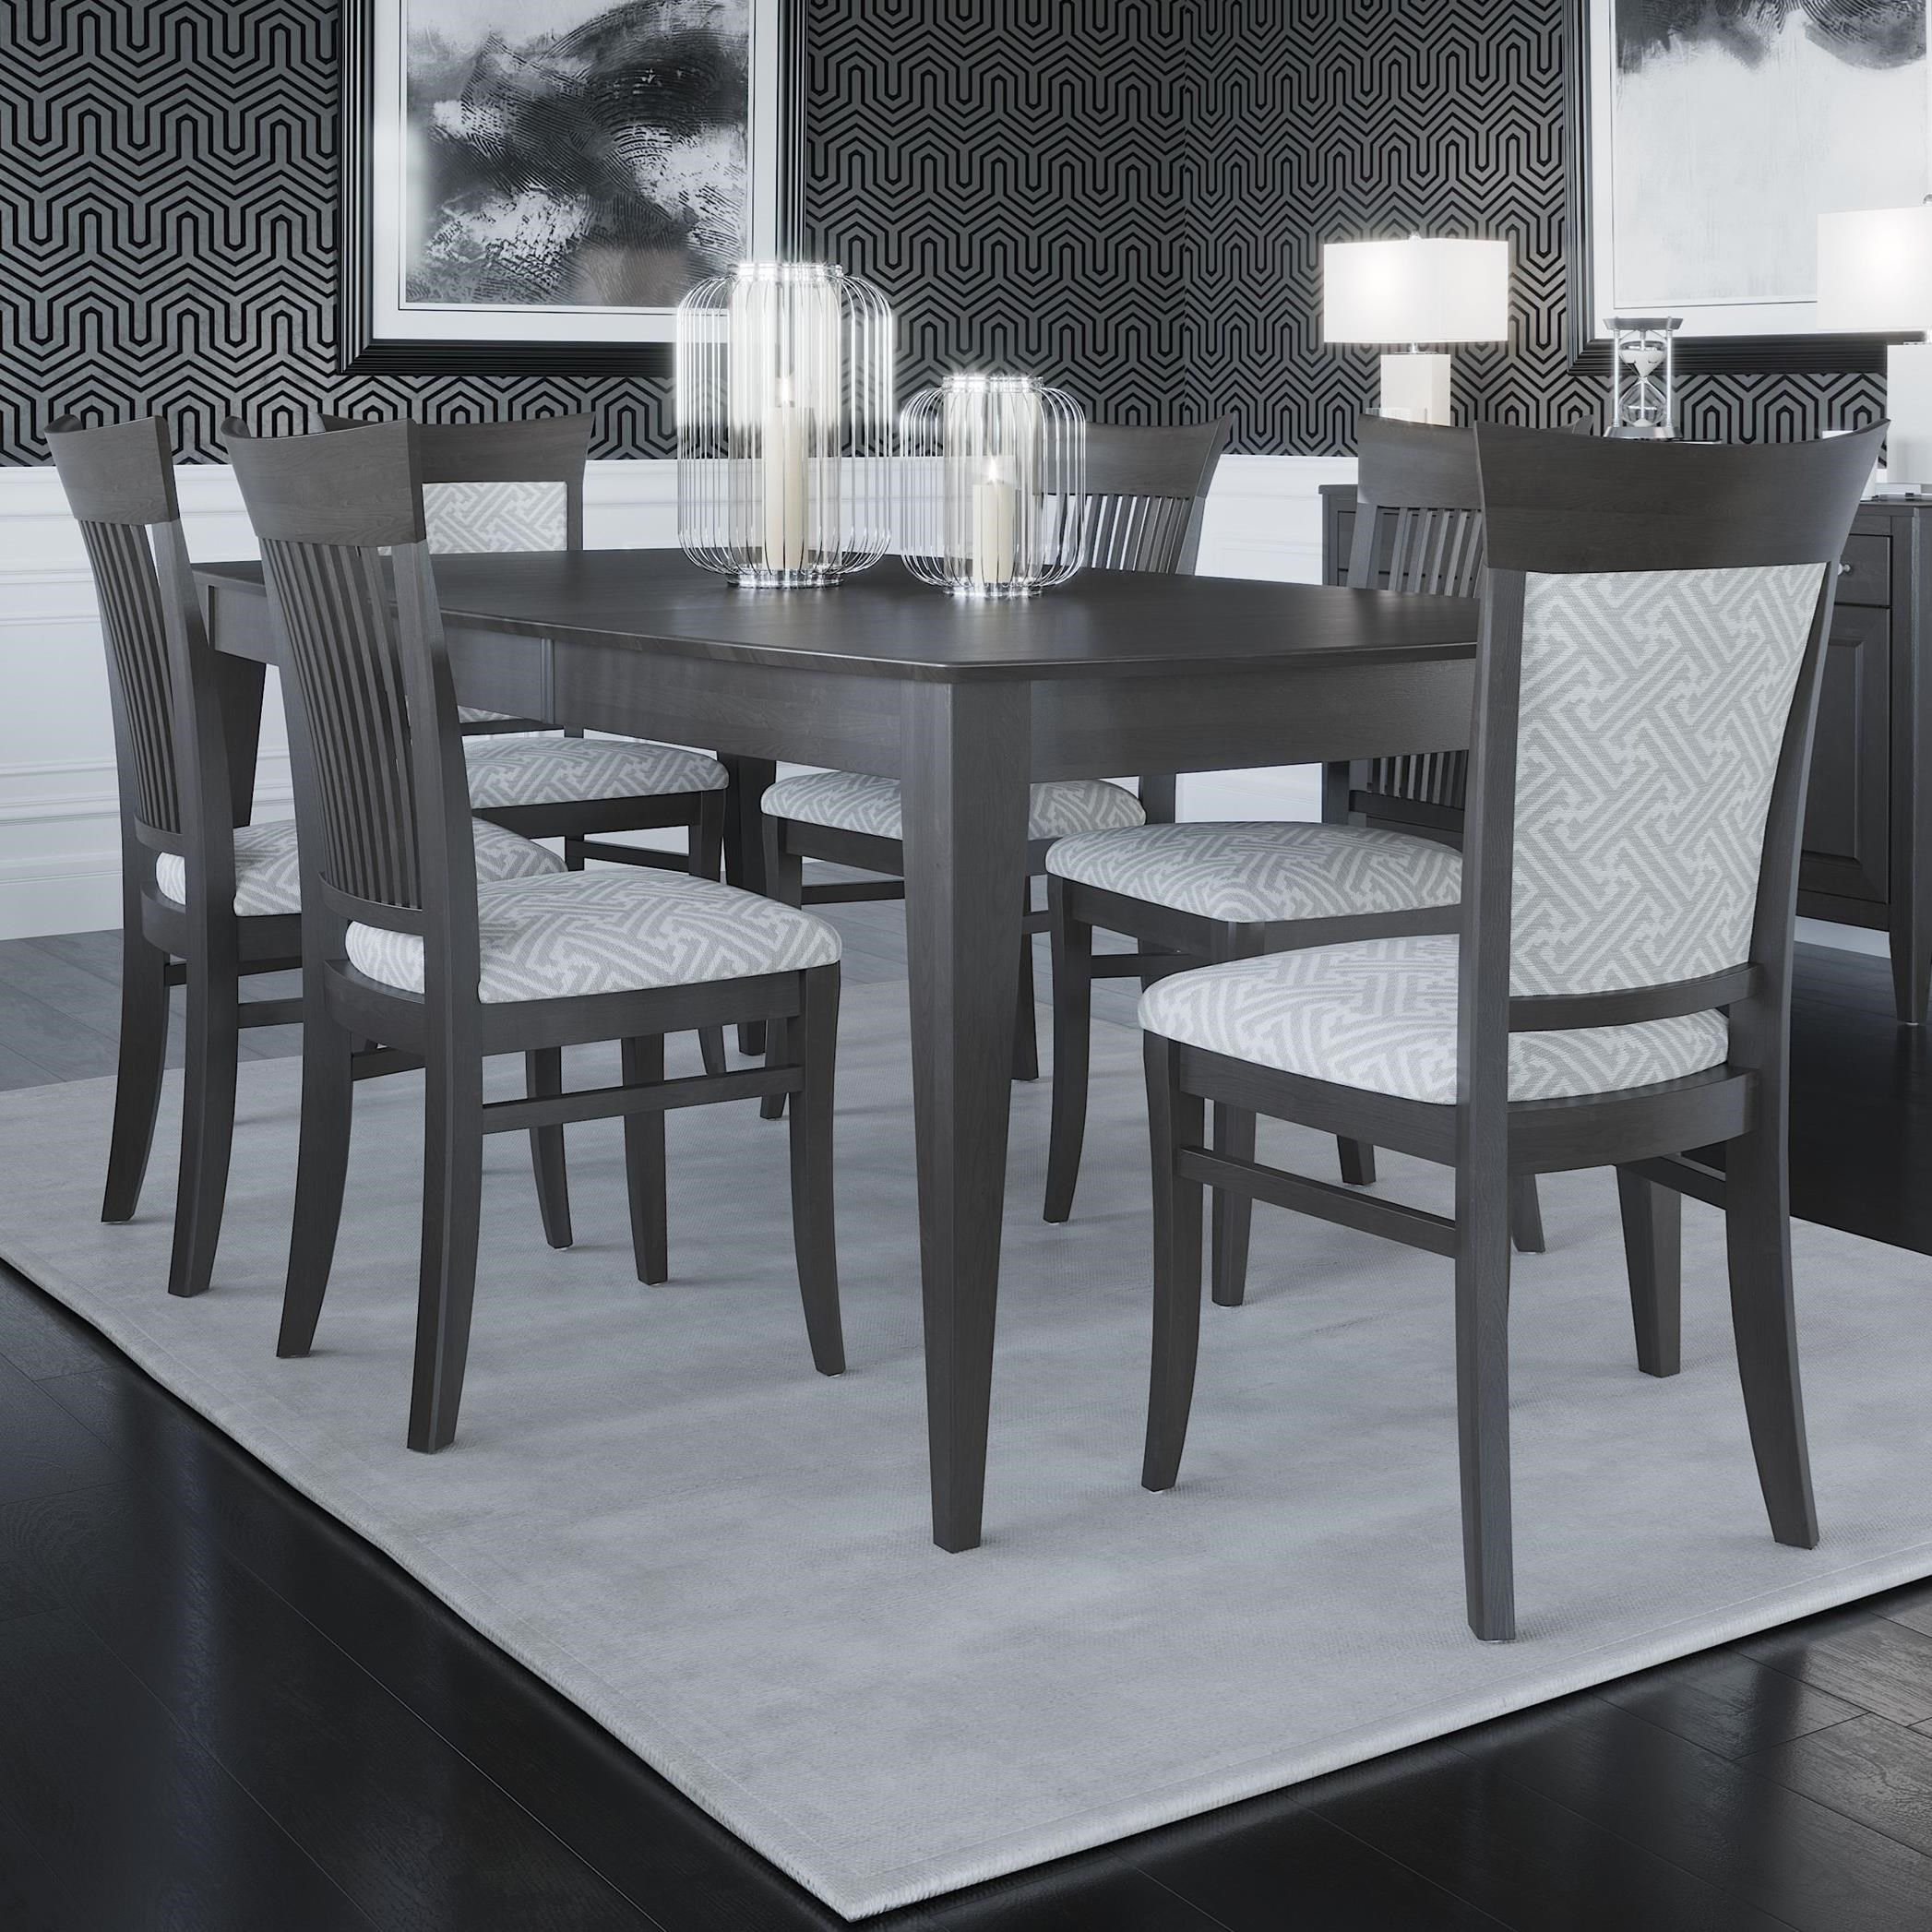 Core - Custom Dining Customizable Boat Shape Dining Table Set by Canadel at Jordan's Home Furnishings